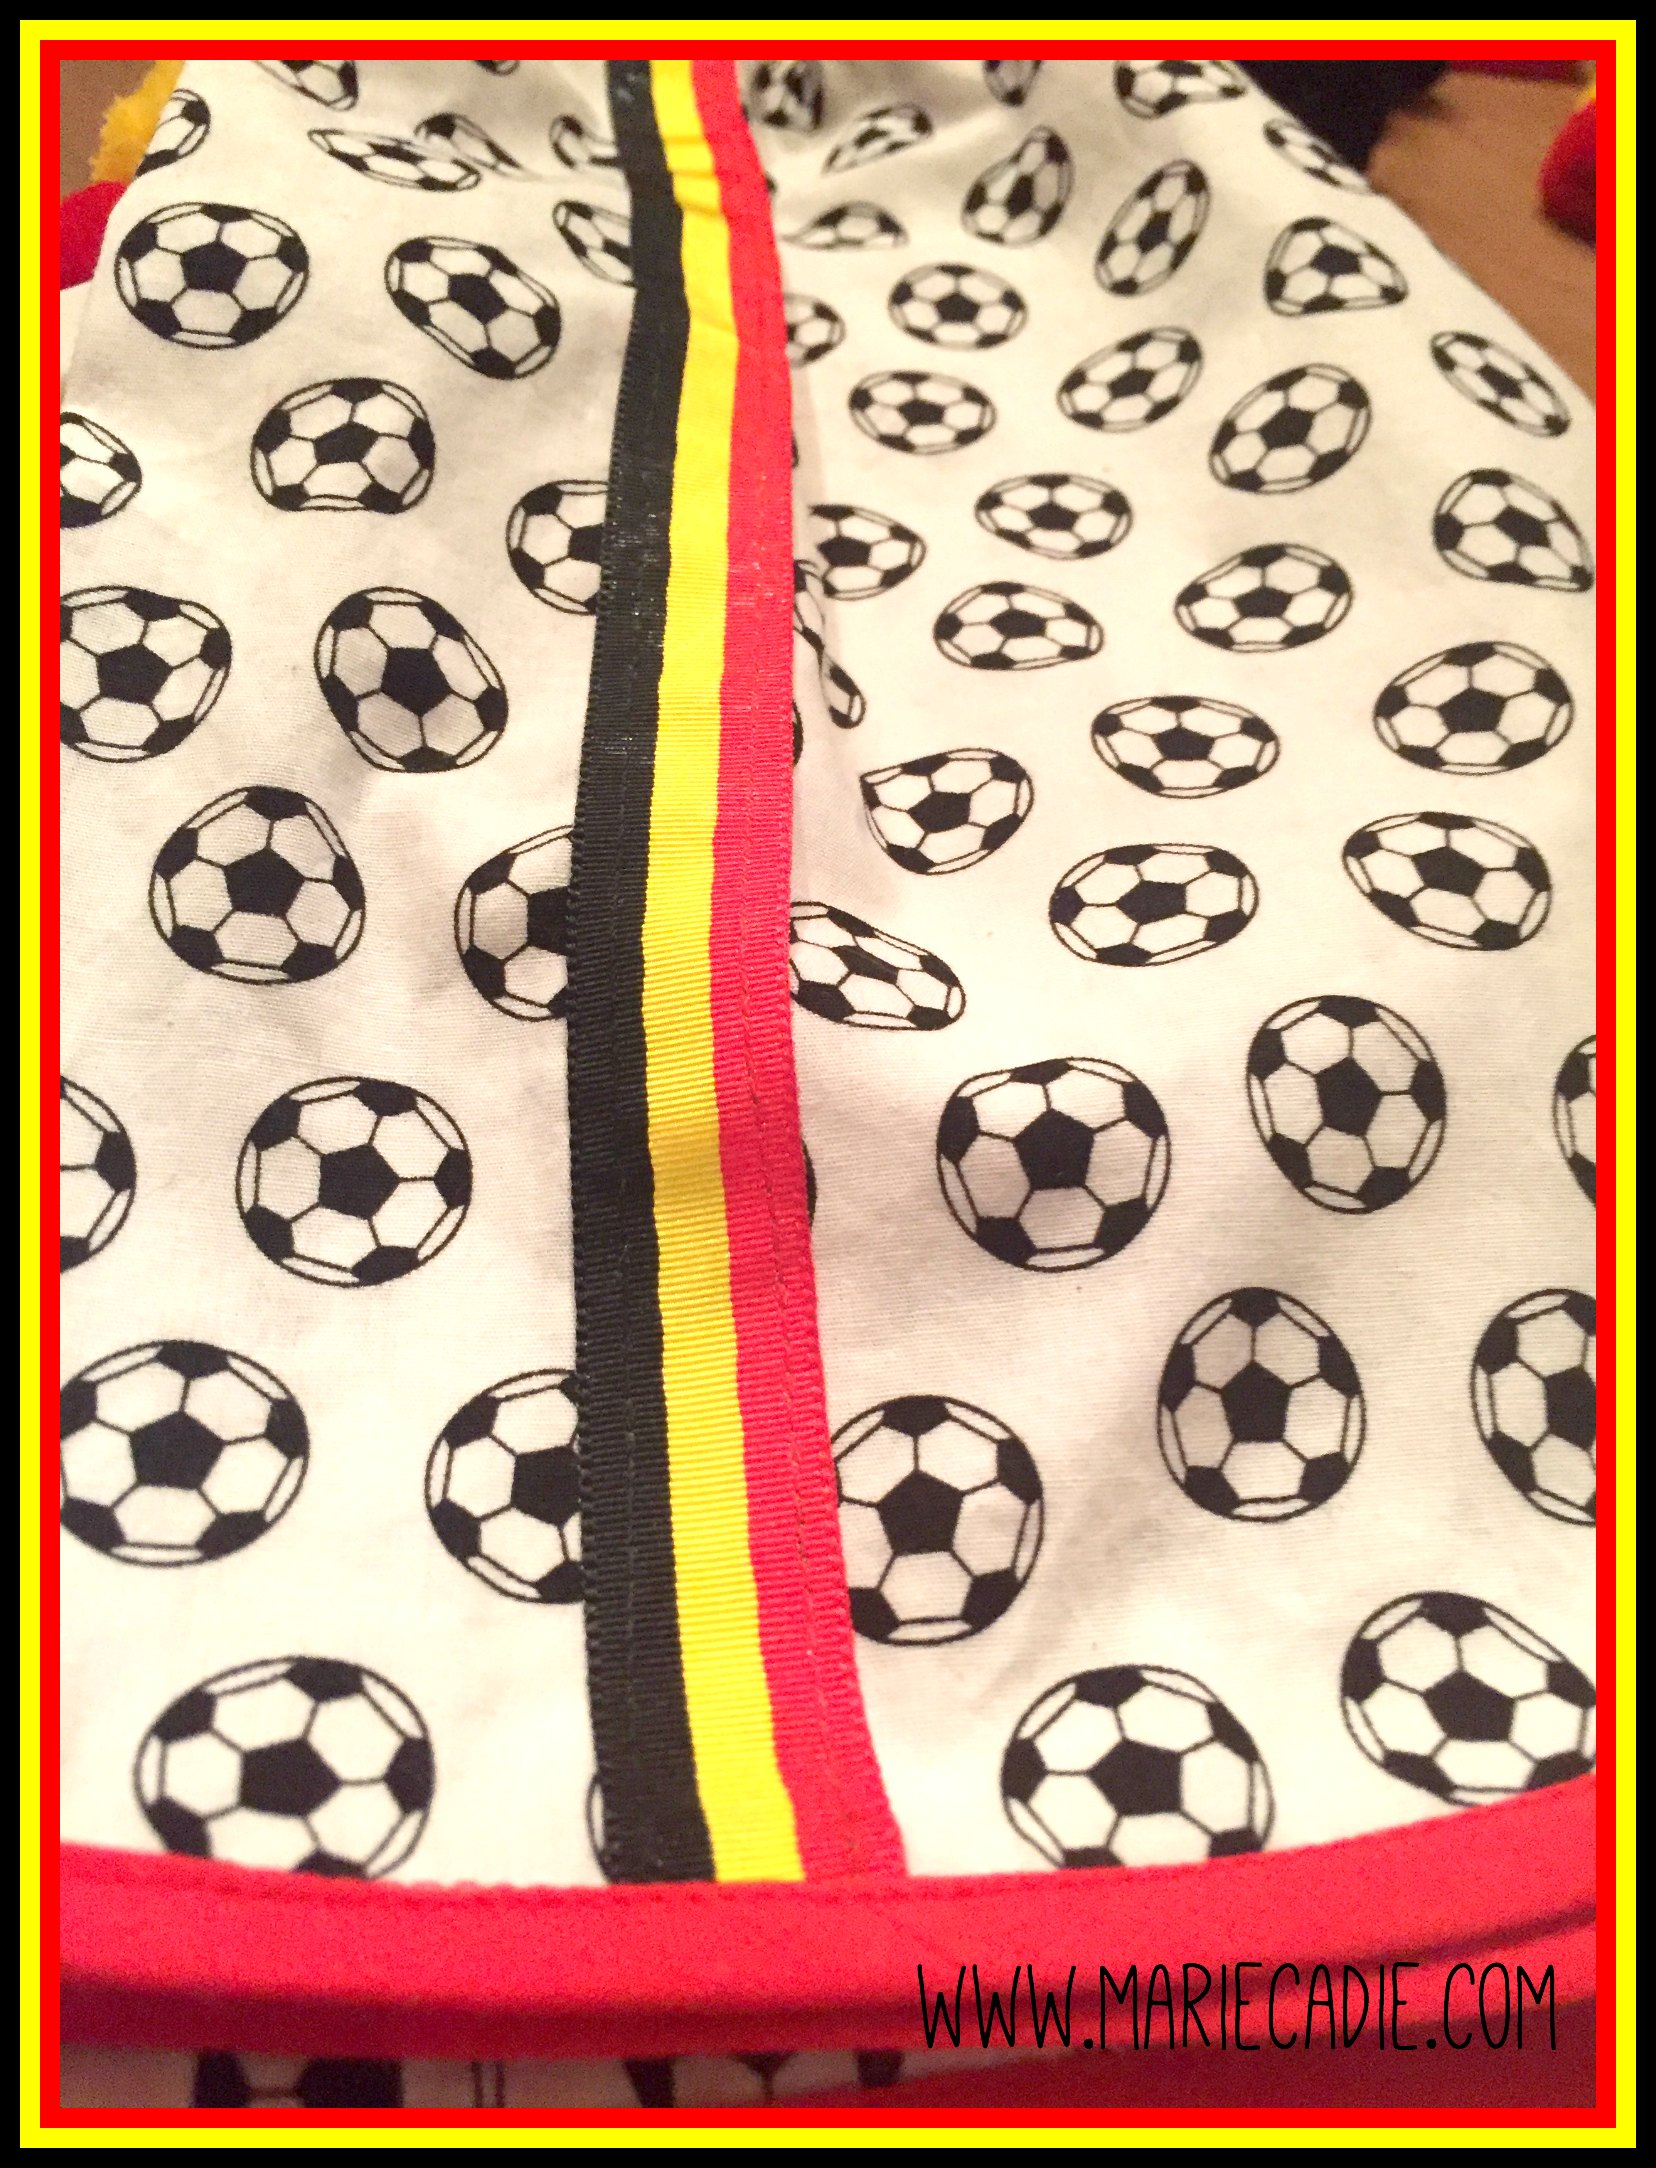 MarieCadie.com_voetbaloutfit_detail lint